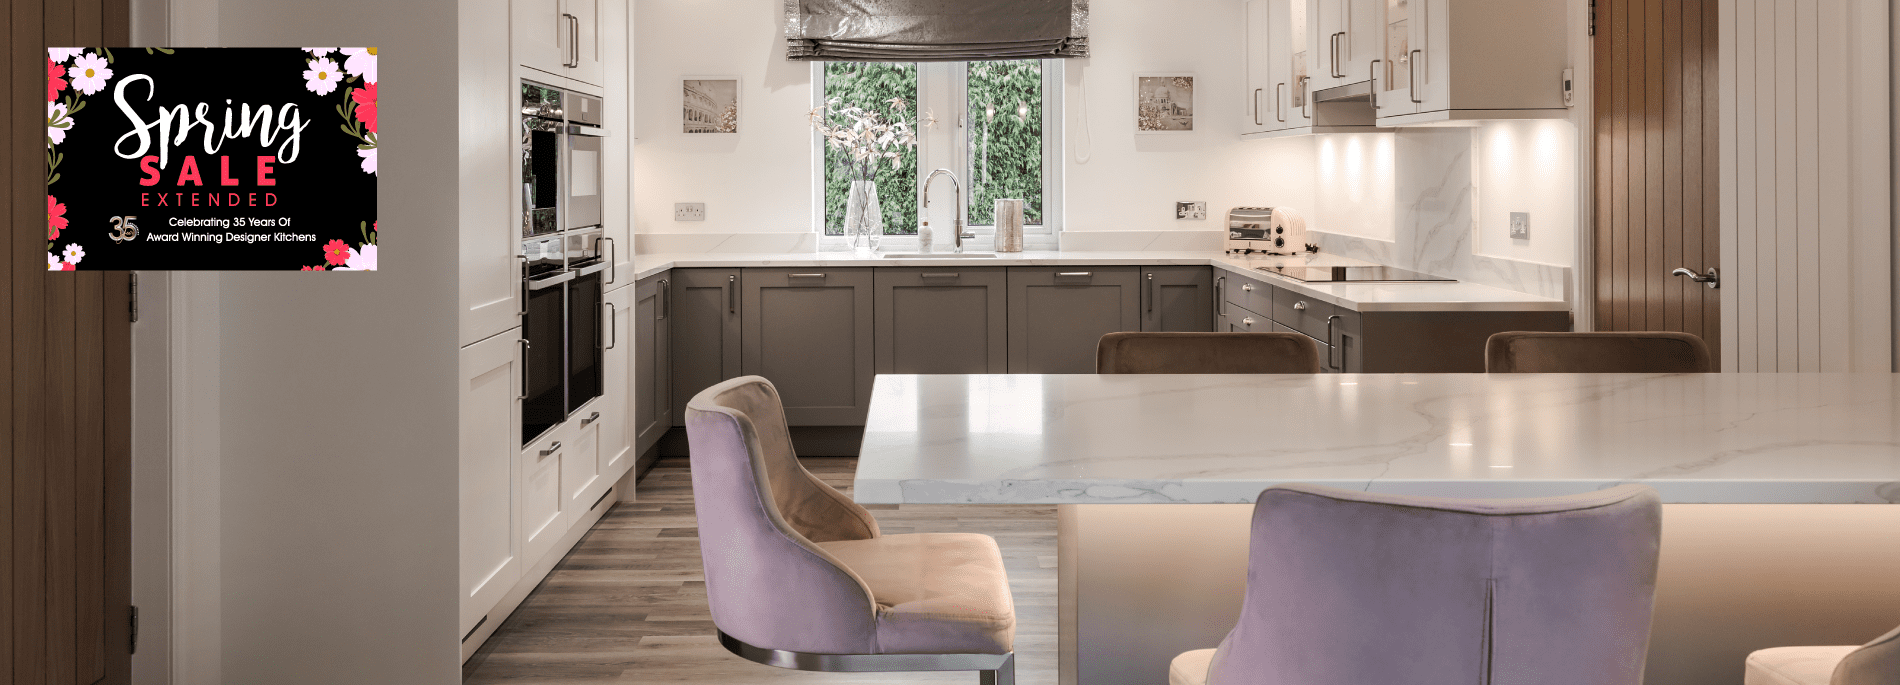 WIN £3,500 cashback on your dream kitchen!